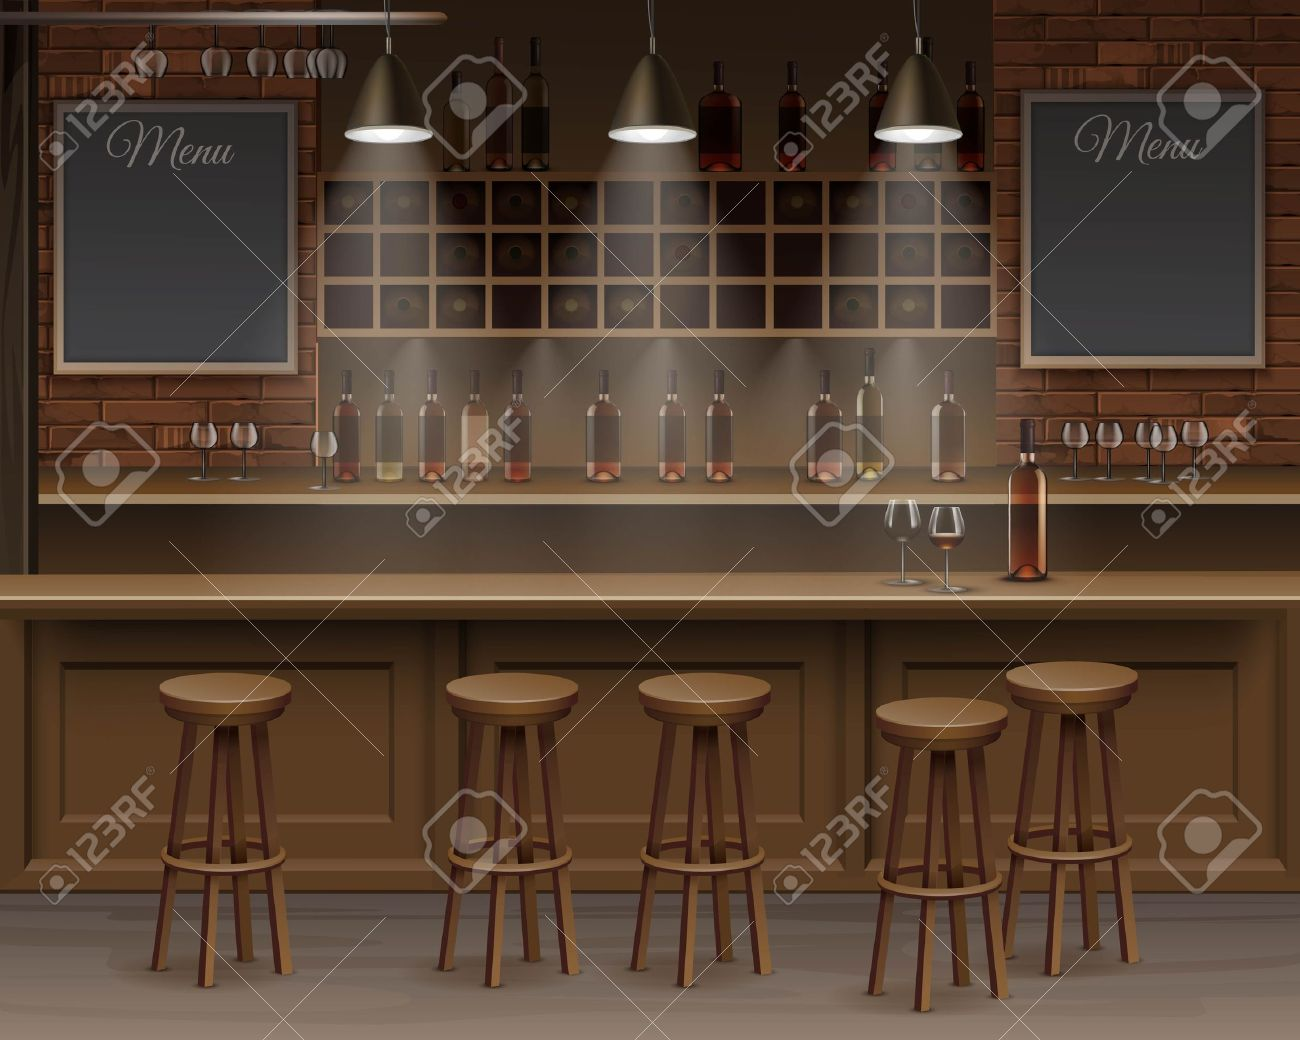 Captivating Illustration Of Bar Cafe Beer Cafeteria Counter Desk Interior Stock Vector    48489757